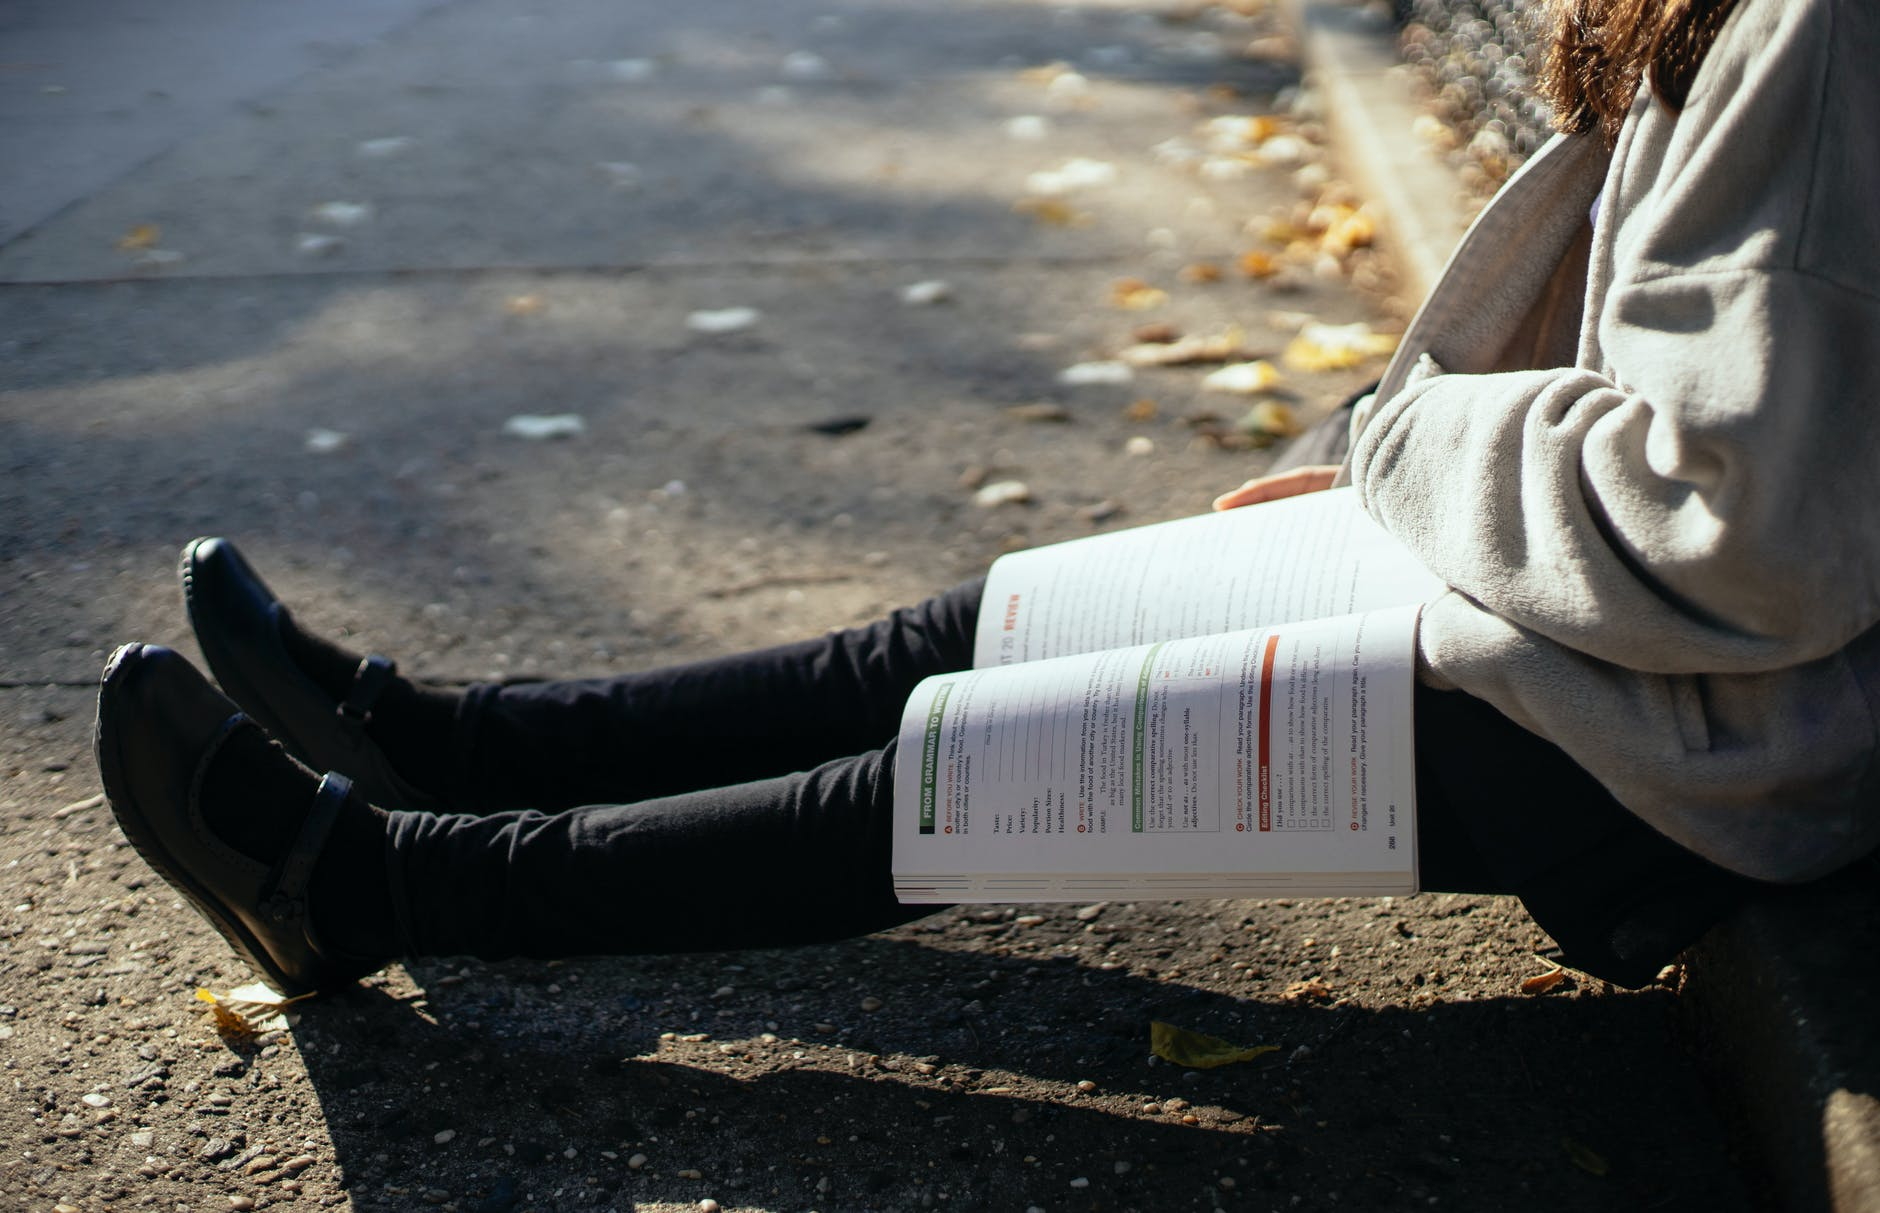 crop faceless student with textbook sitting on ground in park